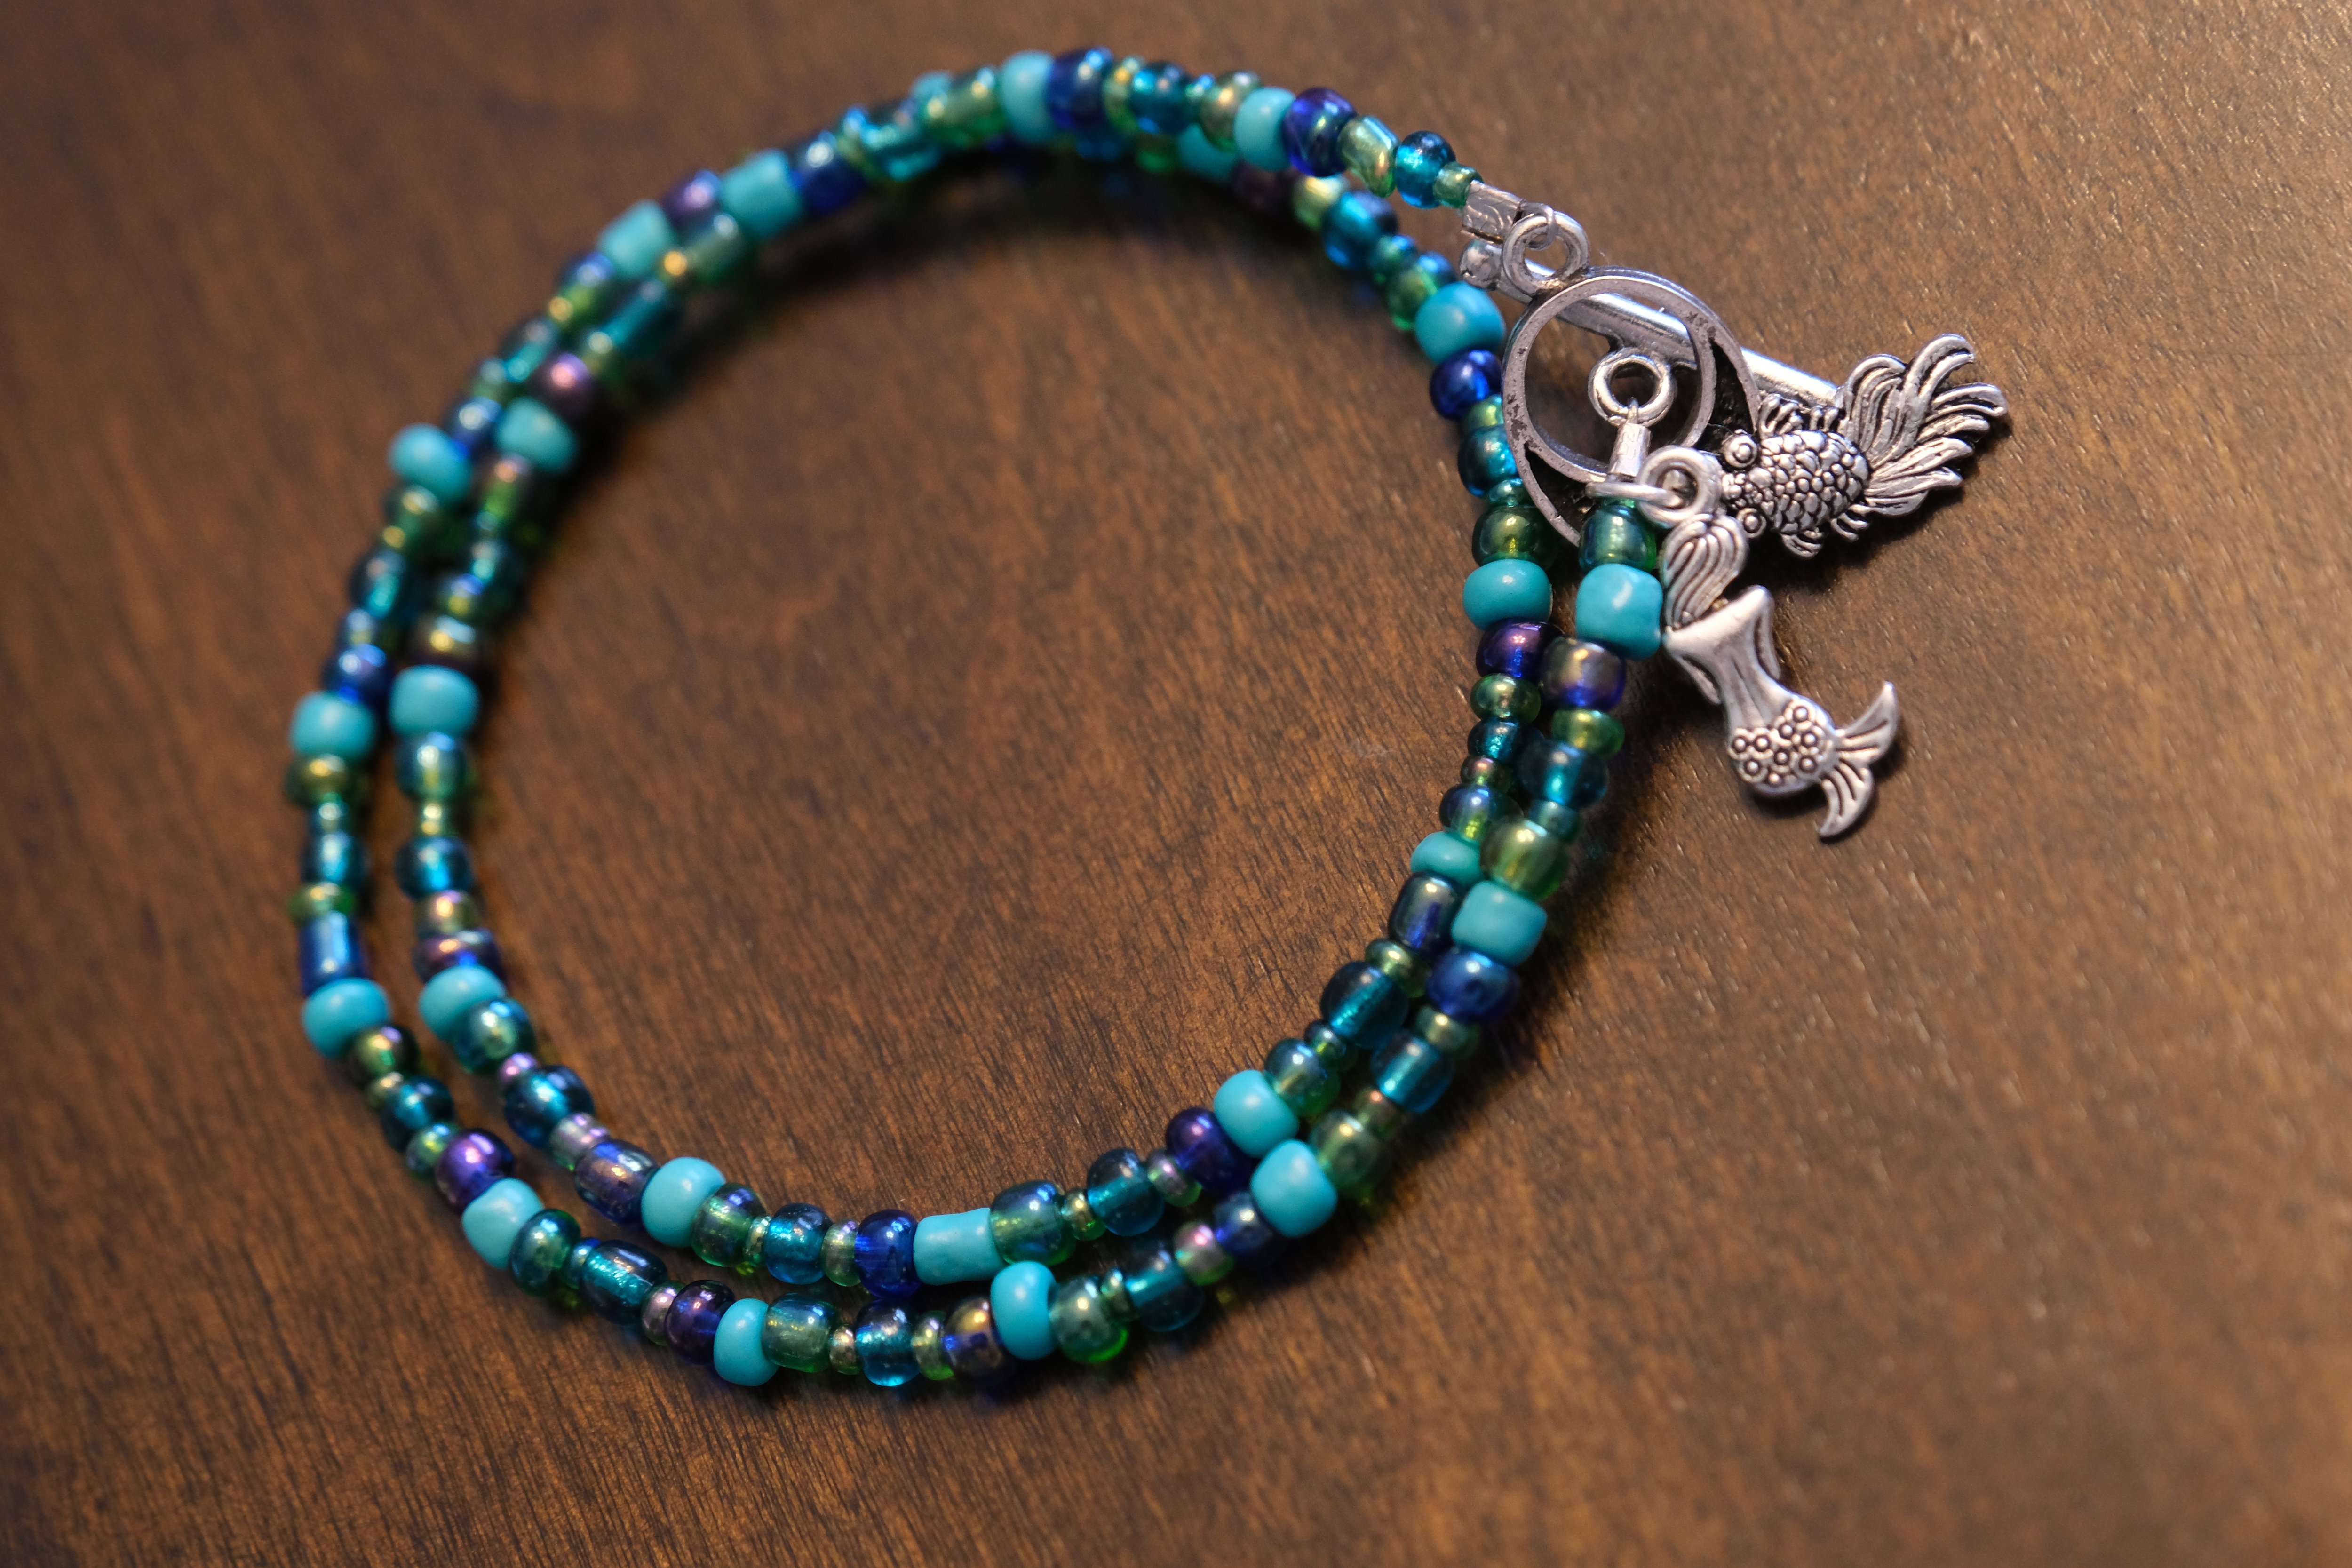 201799 Teal Glass and Silver Wood Bracelet with 3 Charms and Heart Toggle and Matching Earrings Set